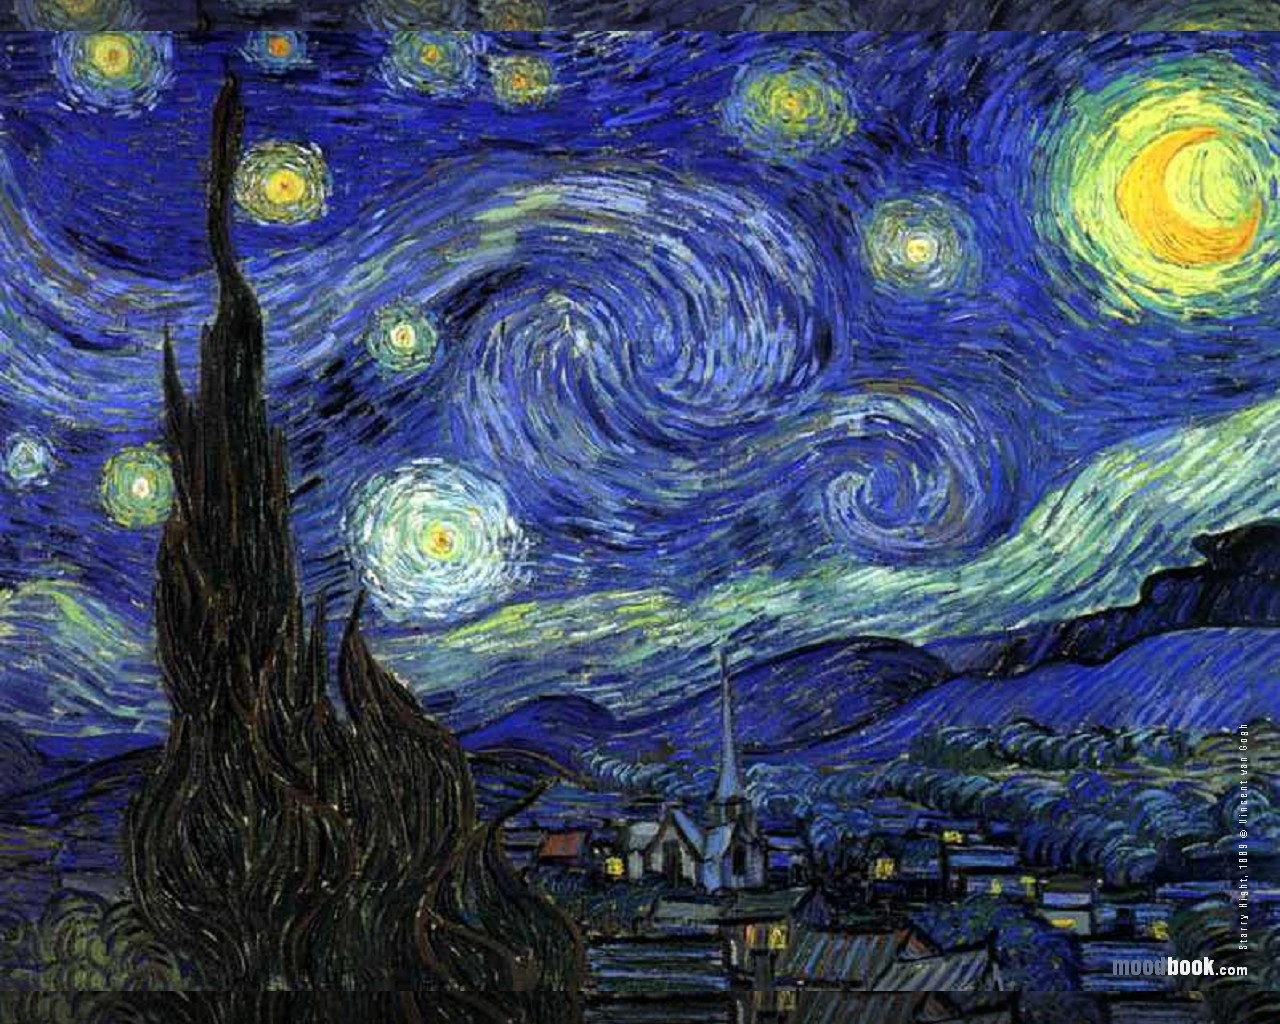 starry wallpaper. vincent-van-gogh-wallpaper-starry-night